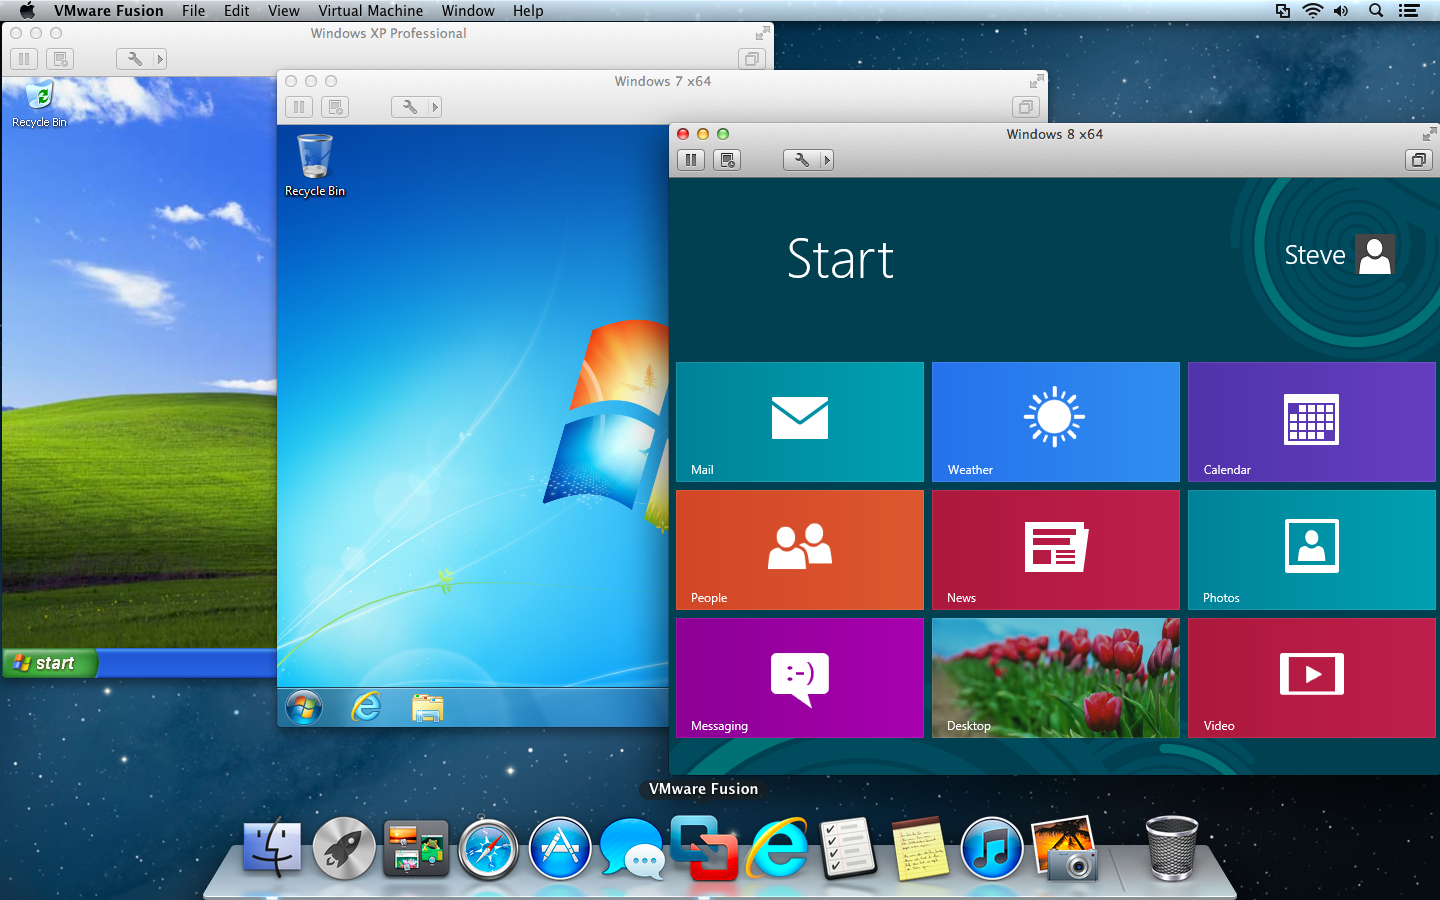 VMware Fusion Specs, Pricing, Reviews, & Support